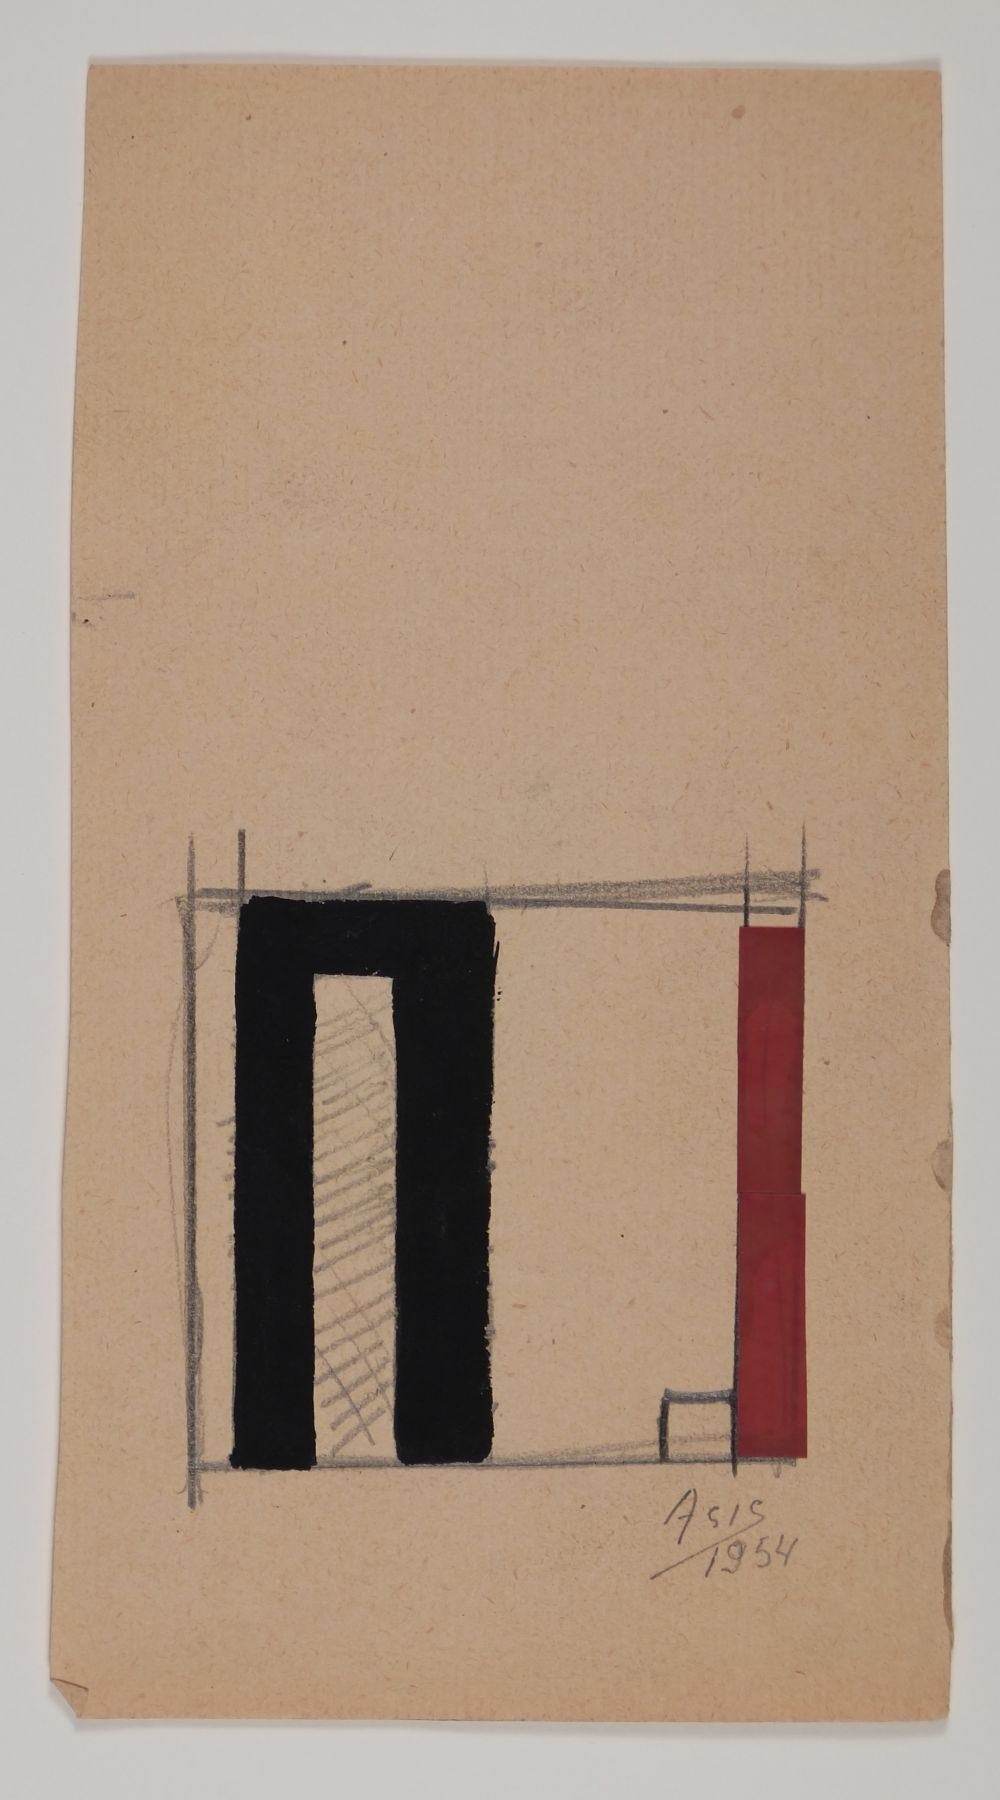 Antonio Asis, Untitled, 1954,Gouache and graphite on paper,8 1/4 x 4 3/8 in. (21 x 11.2 cm.)